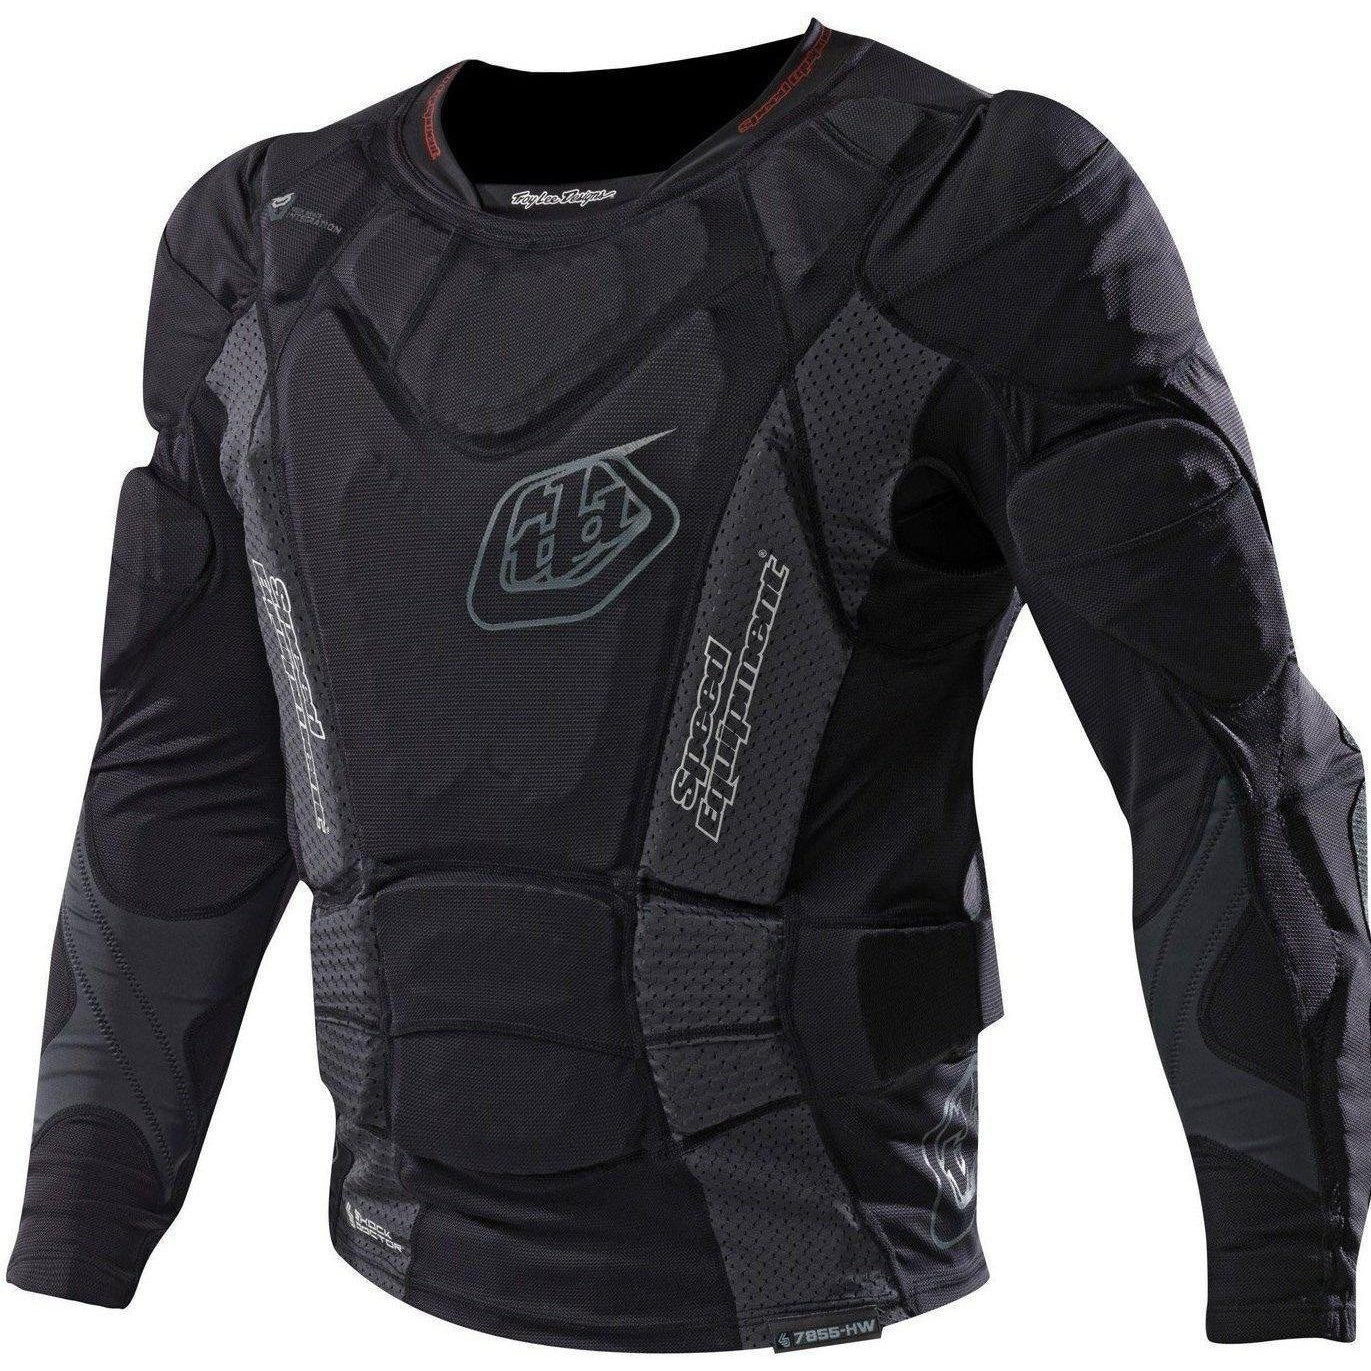 Troy Lee Designs-Troy Lee Designs 7855 Youth Upper Protection Long Sleeve Shirt-BLACK-Y-M-TLD509003201-saddleback-elite-performance-cycling